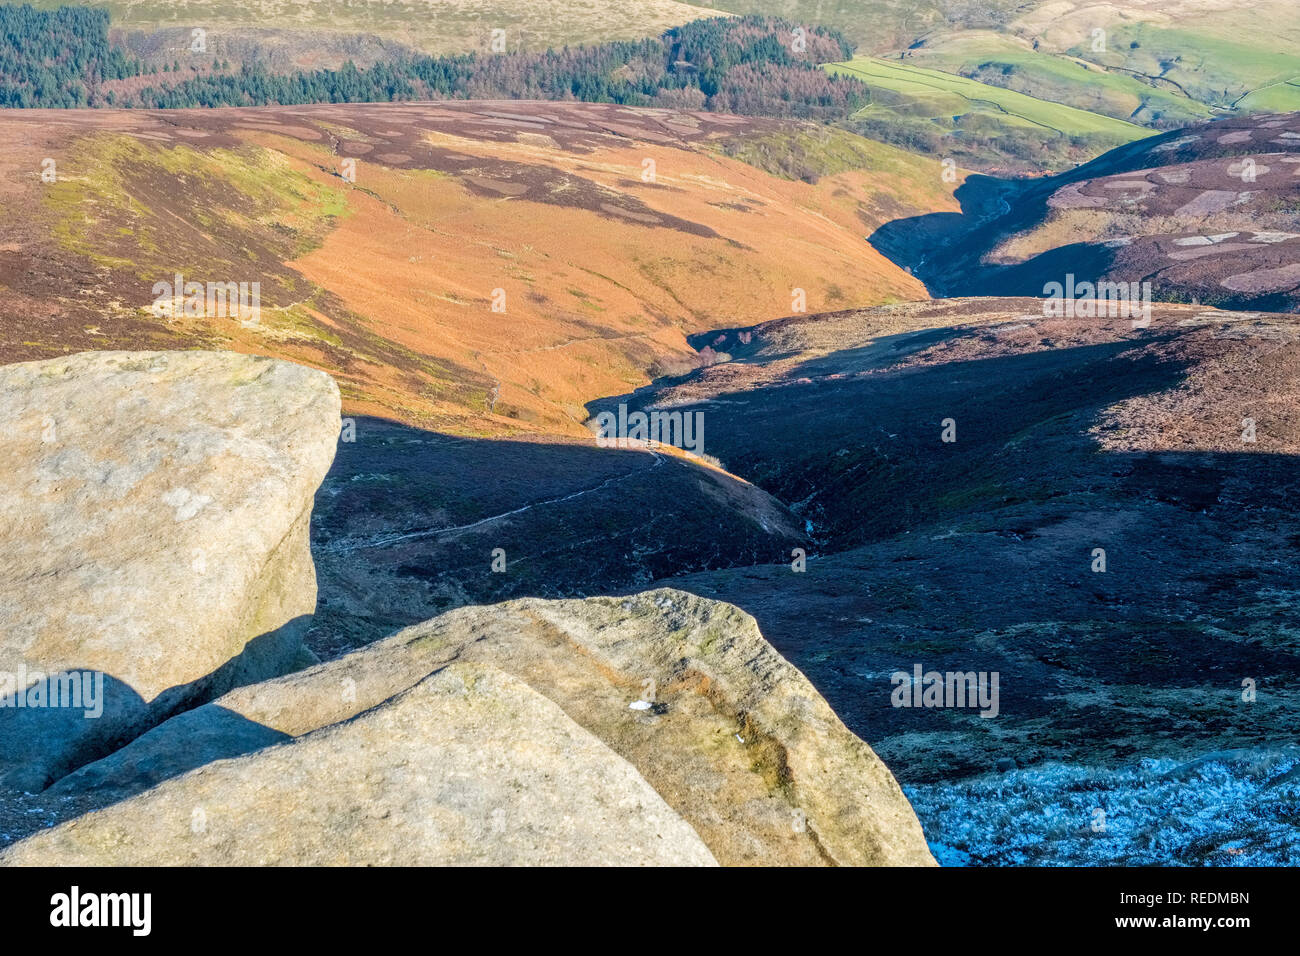 The northern edge of Kinder Scout in the Peak District National Park,Derbyshire,UK - Stock Image